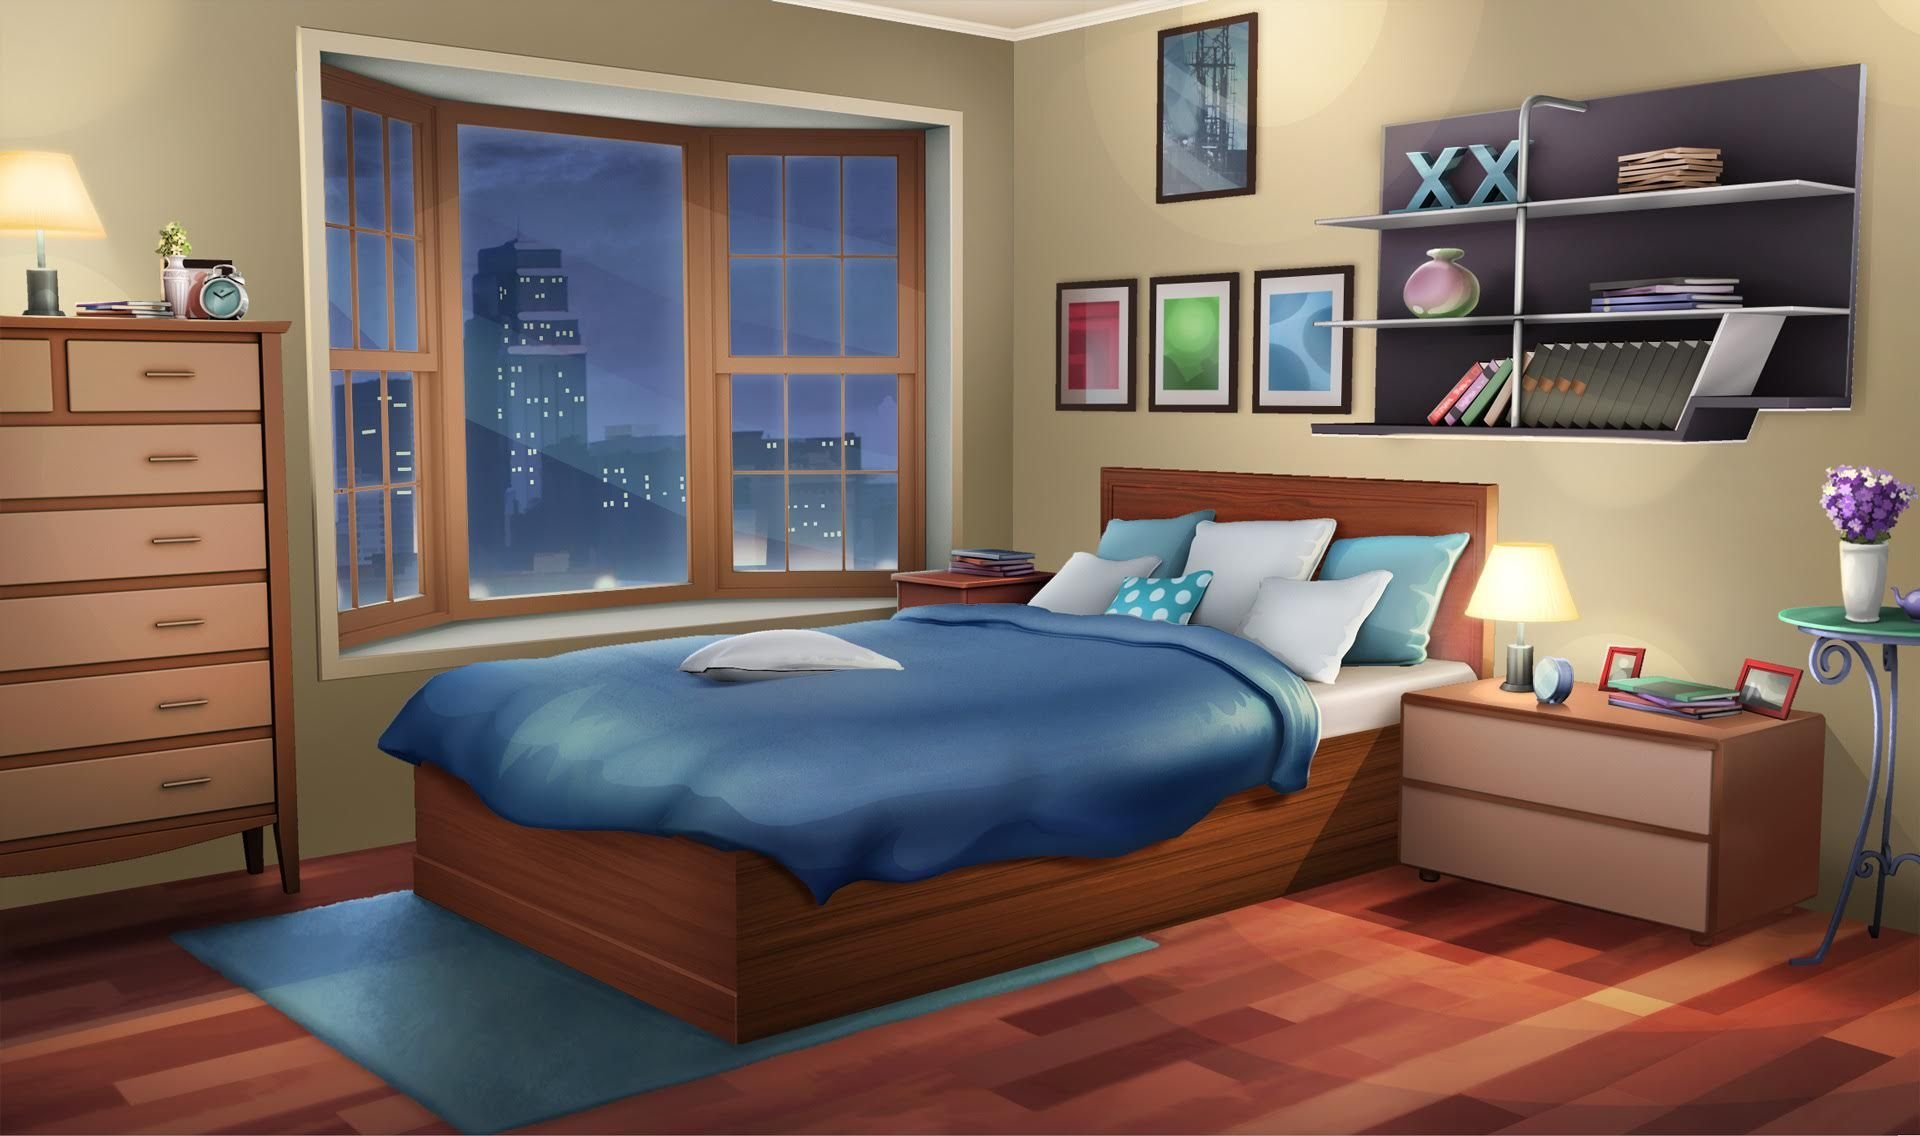 Best Anime Bed Background 5 » Background Check All With Pictures